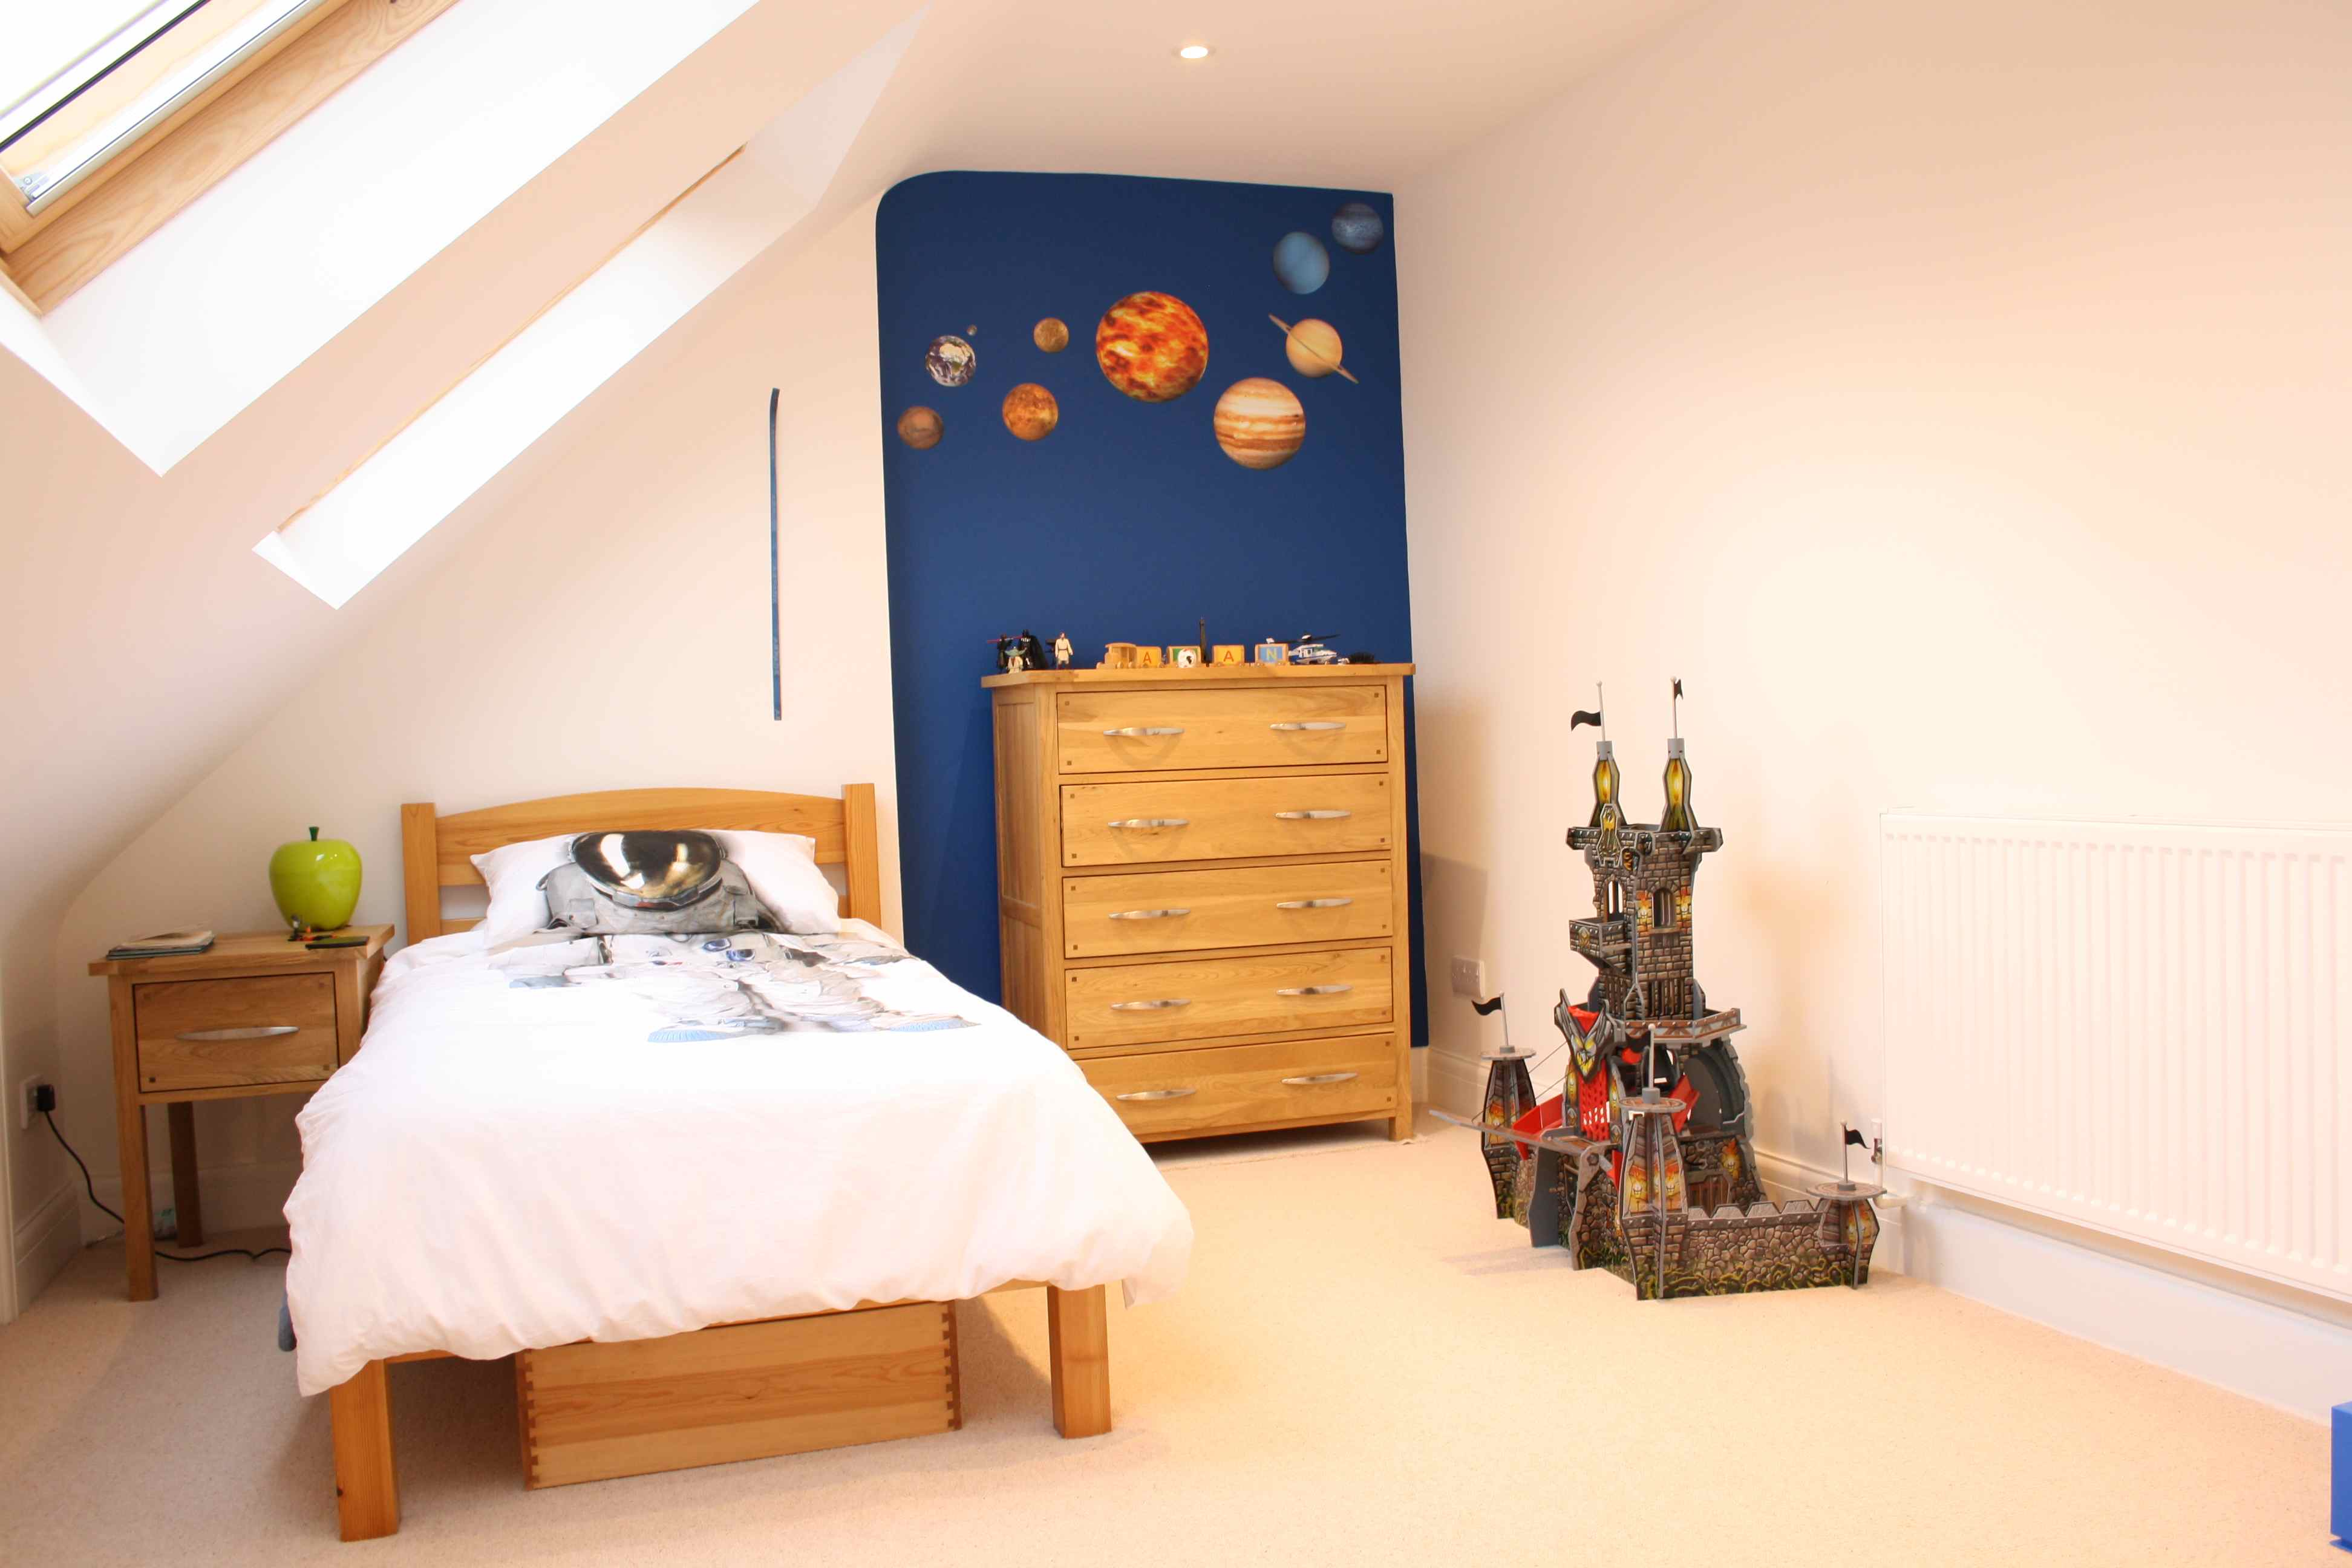 rustic attic space design ideas - Latest news from our loft conversion blog